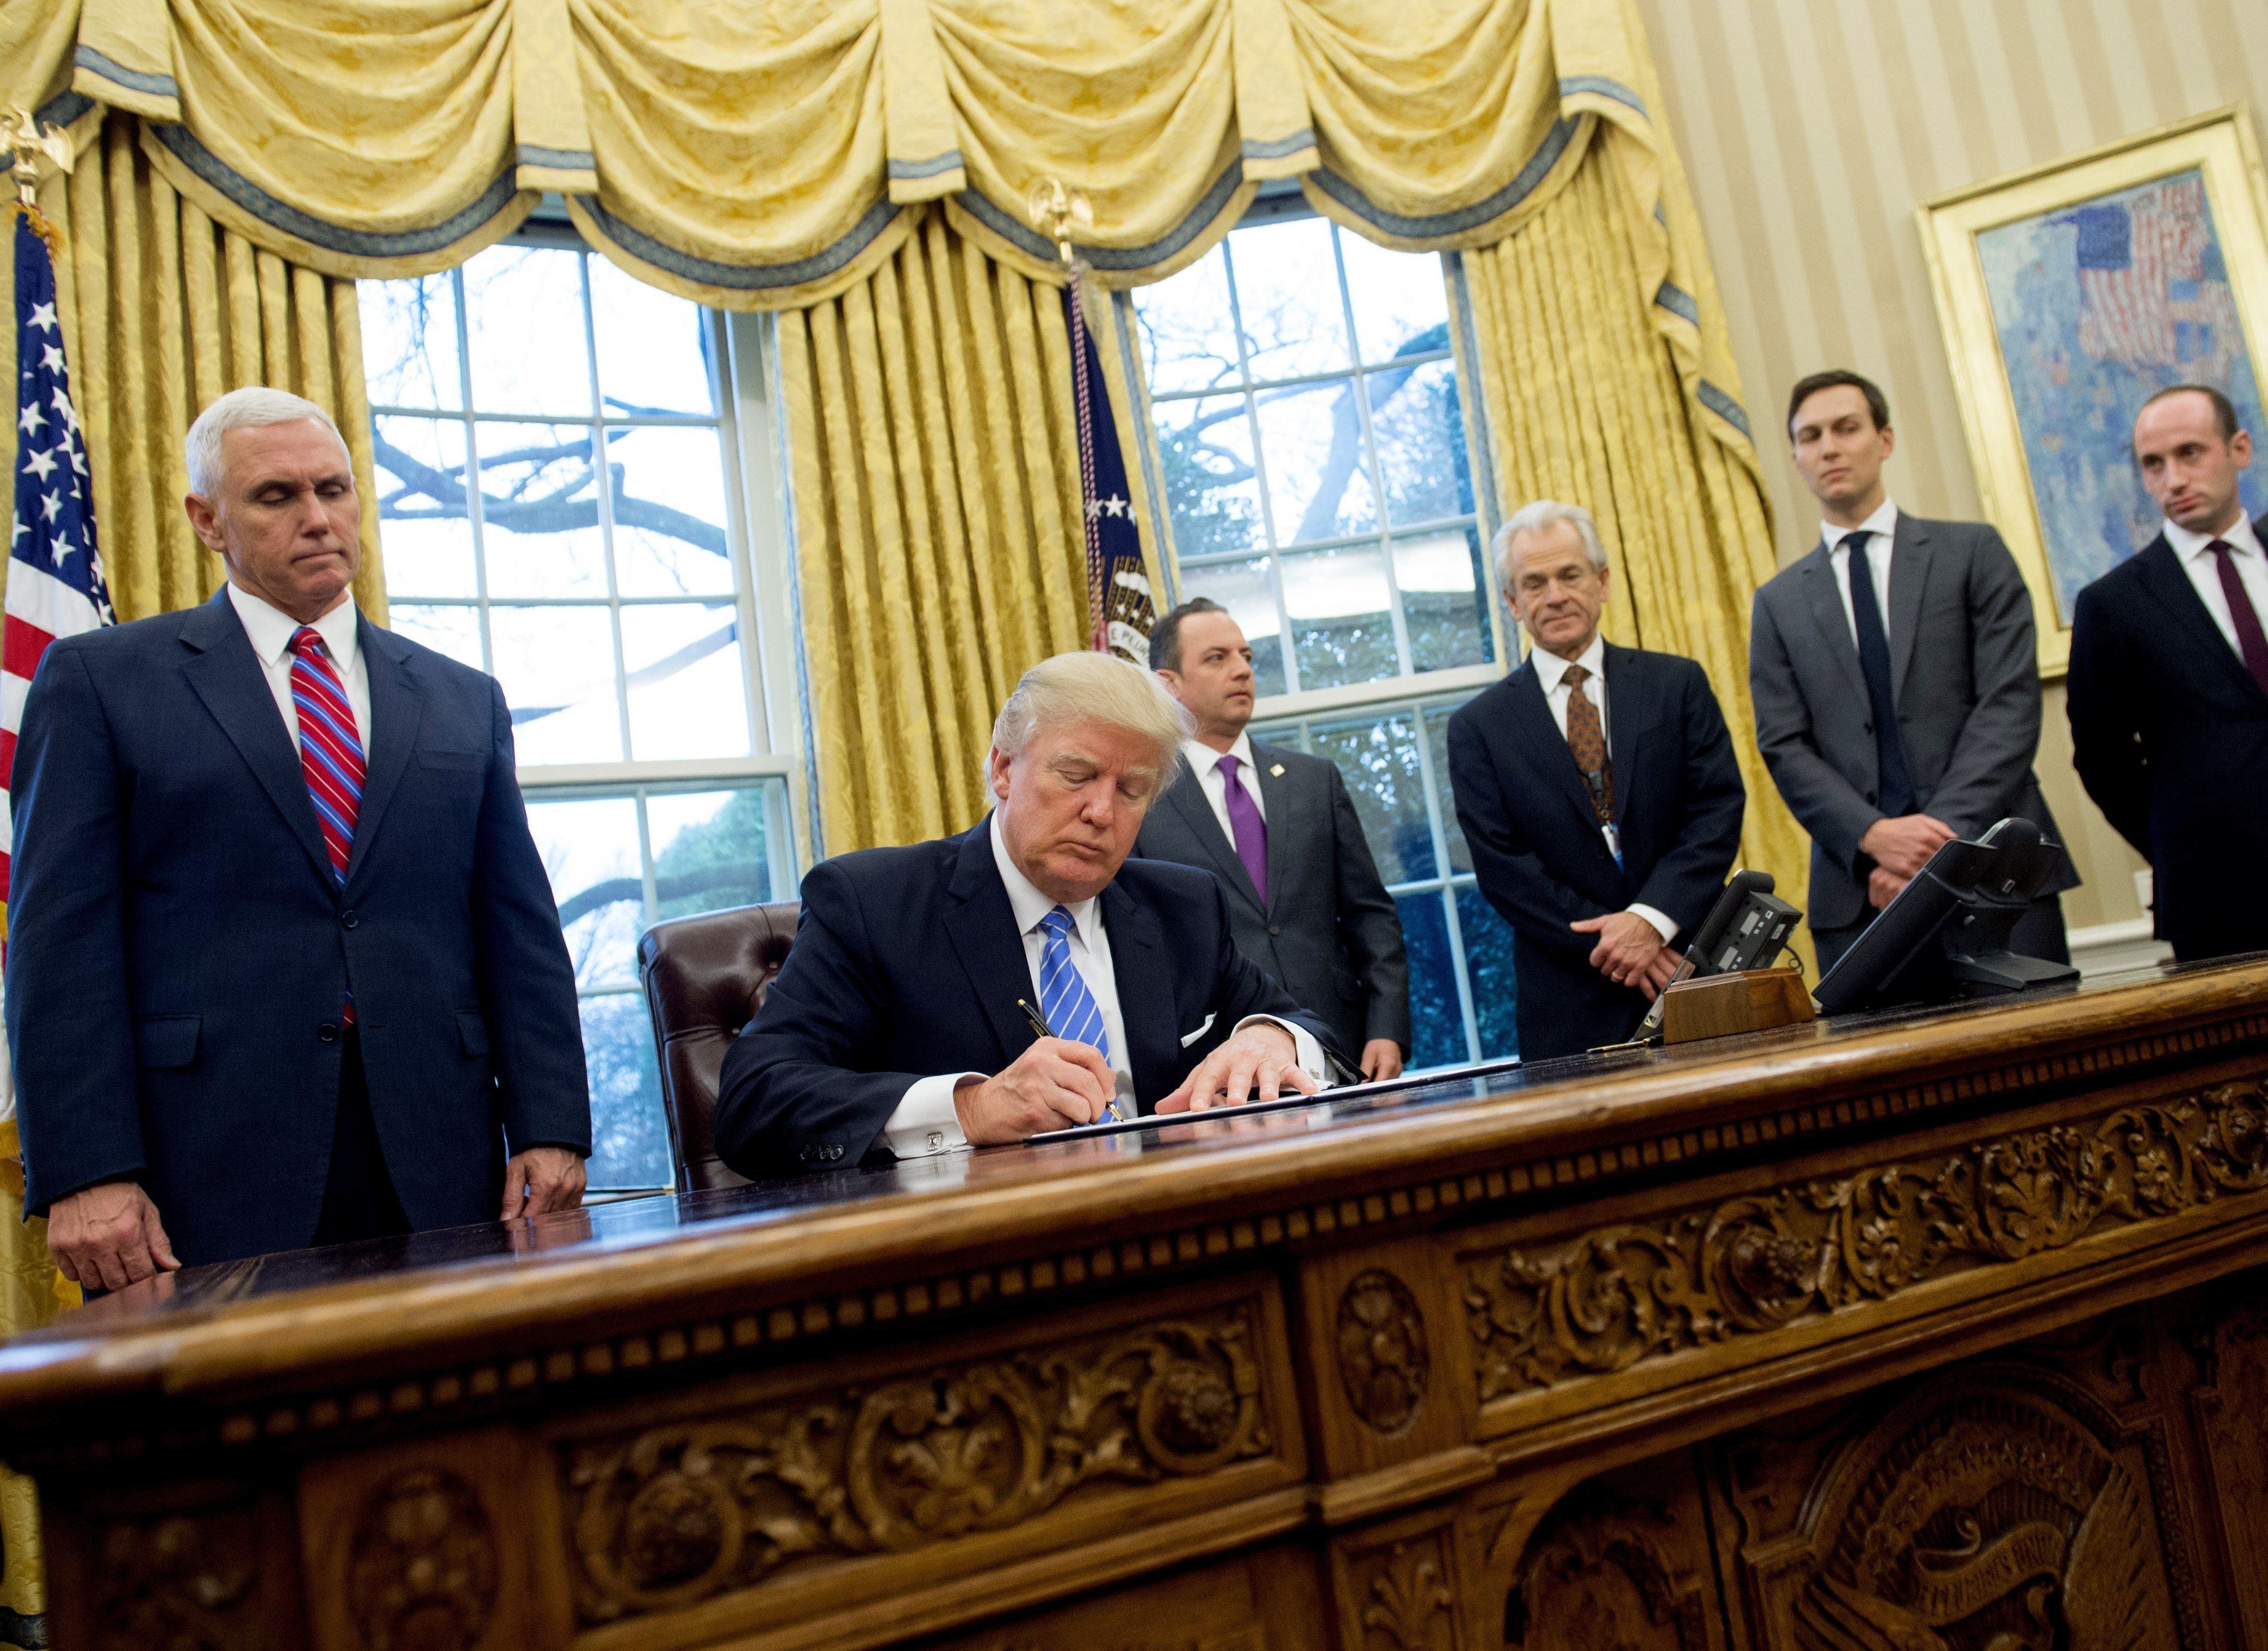 President Donald Trump signed three executive orders Monday in the Oval